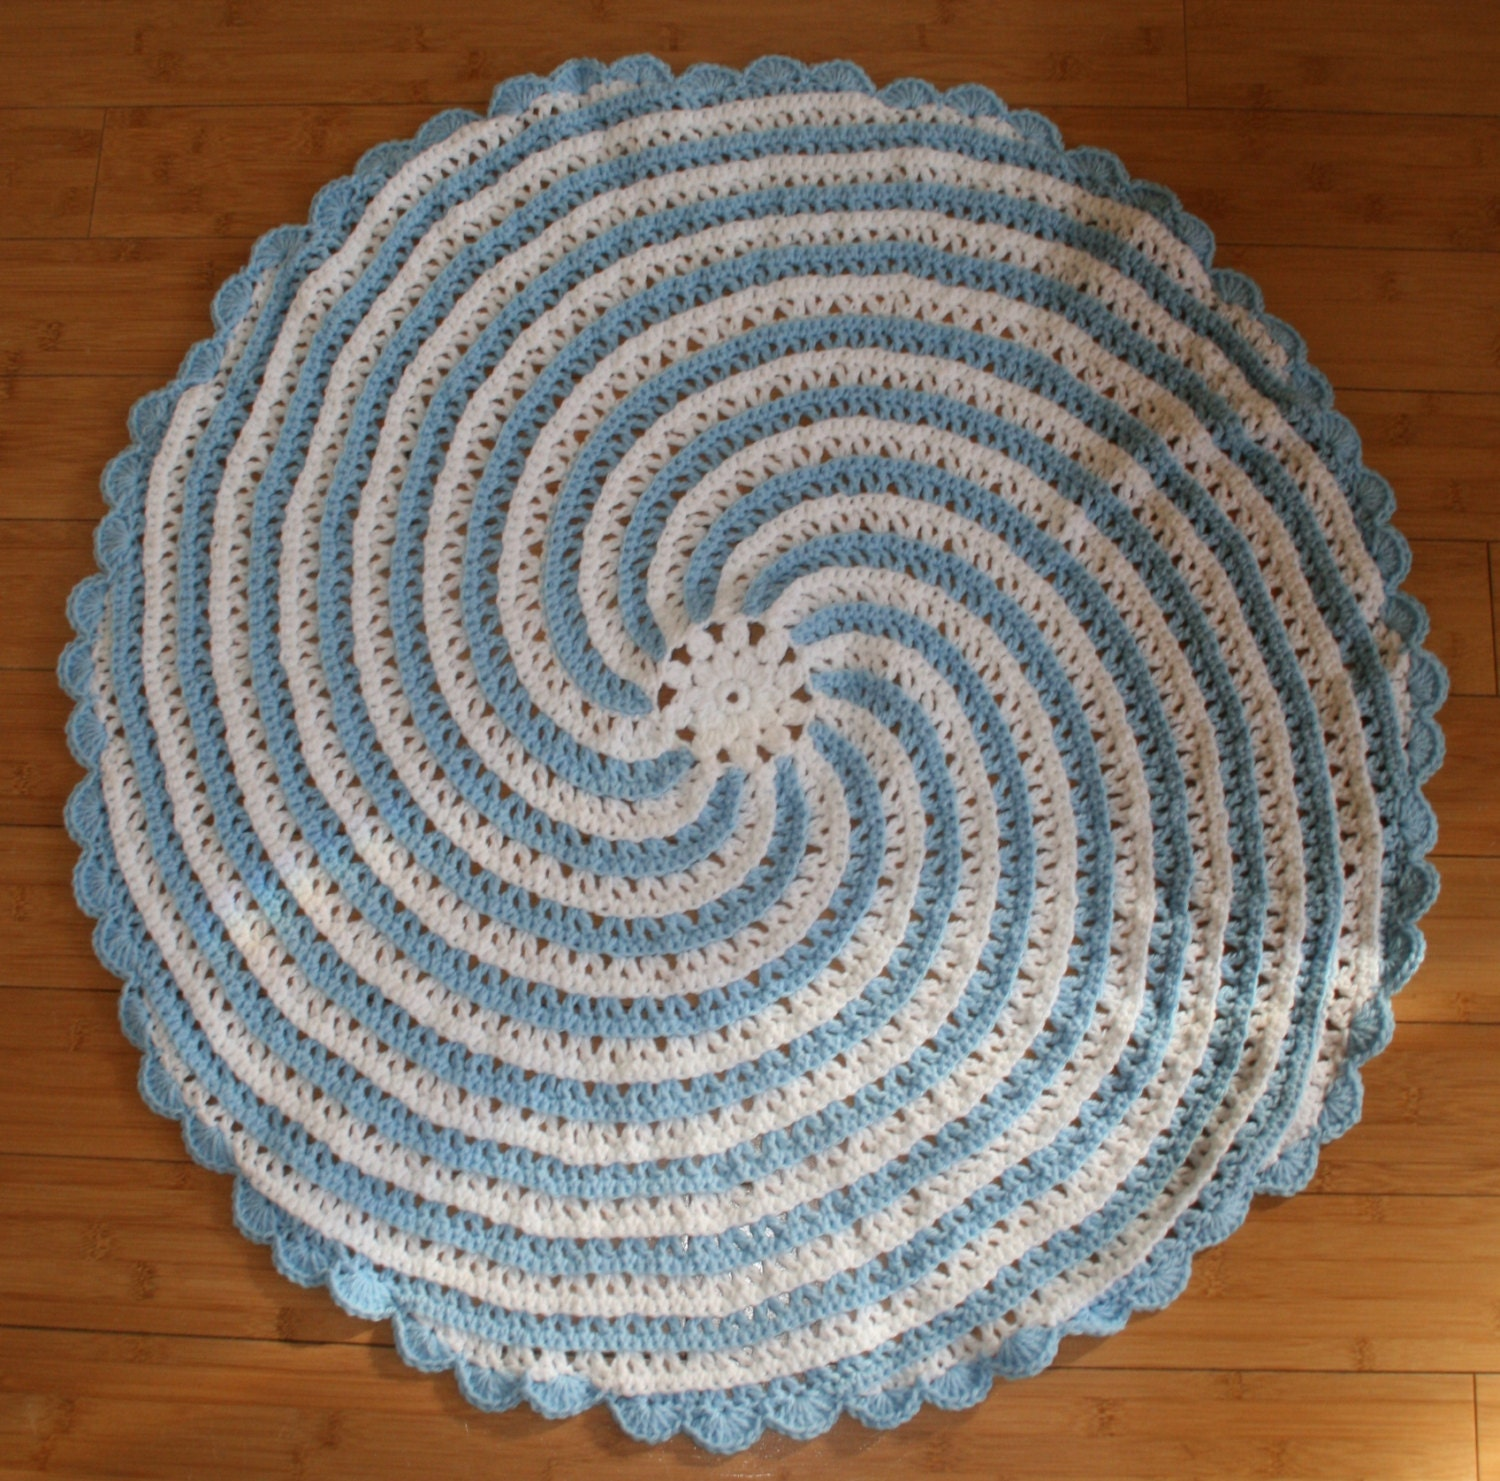 Baby Afghan Crochet Diagram Trusted Wiring Diagrams Stitch Patterns Spiral Blanket Pattern Instant Pdf Dowload